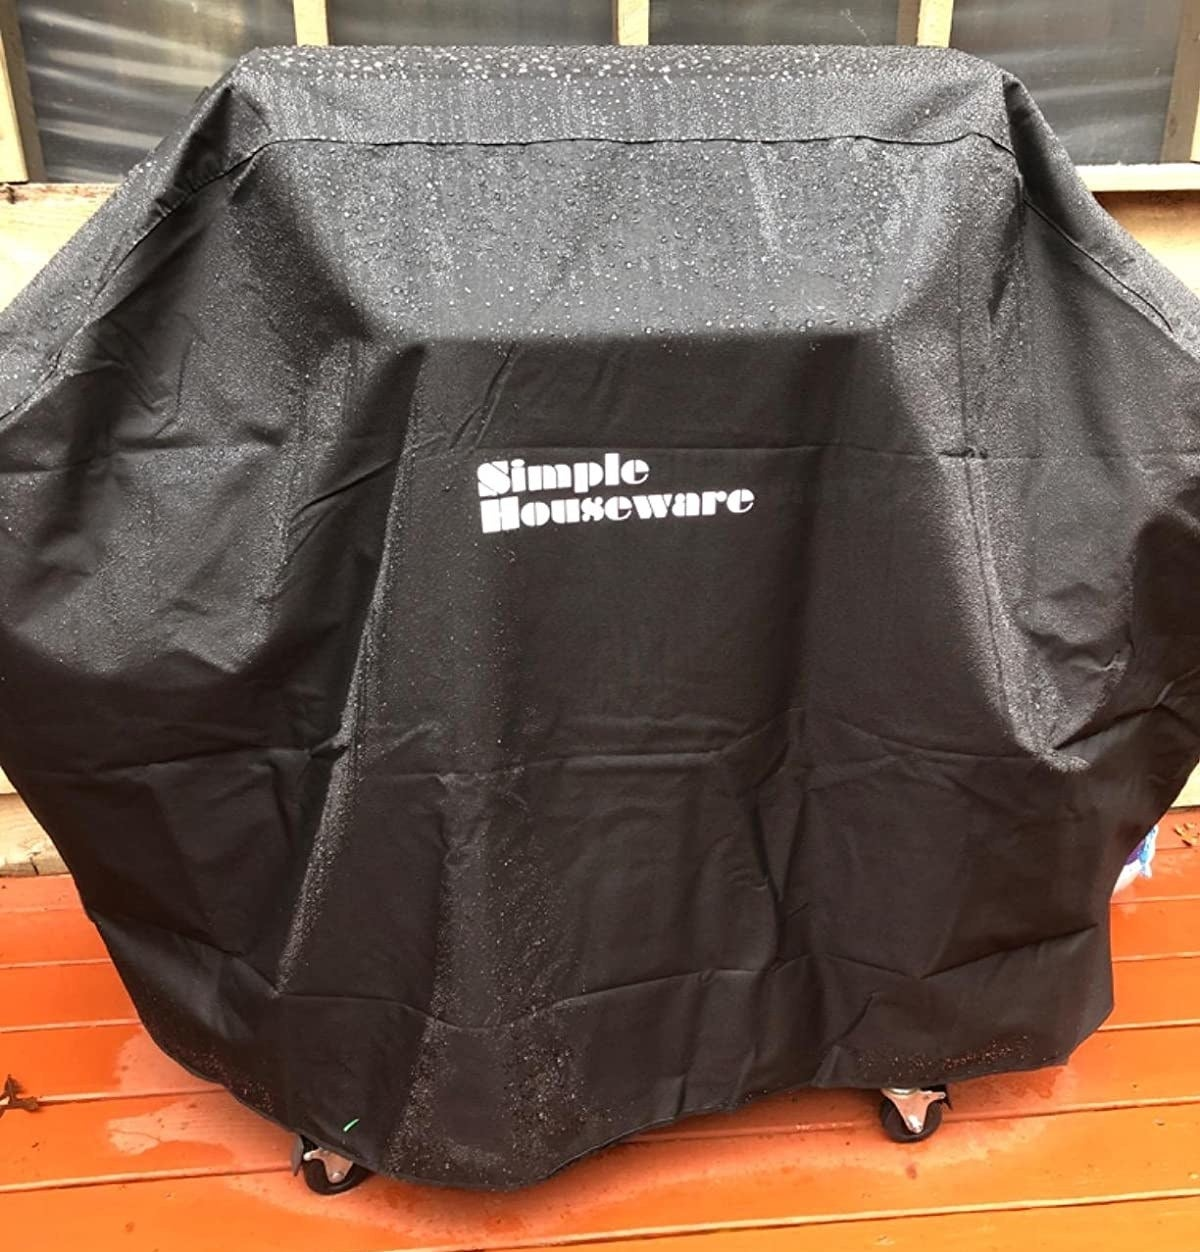 Reviewer using product to protect grill from rainy weather